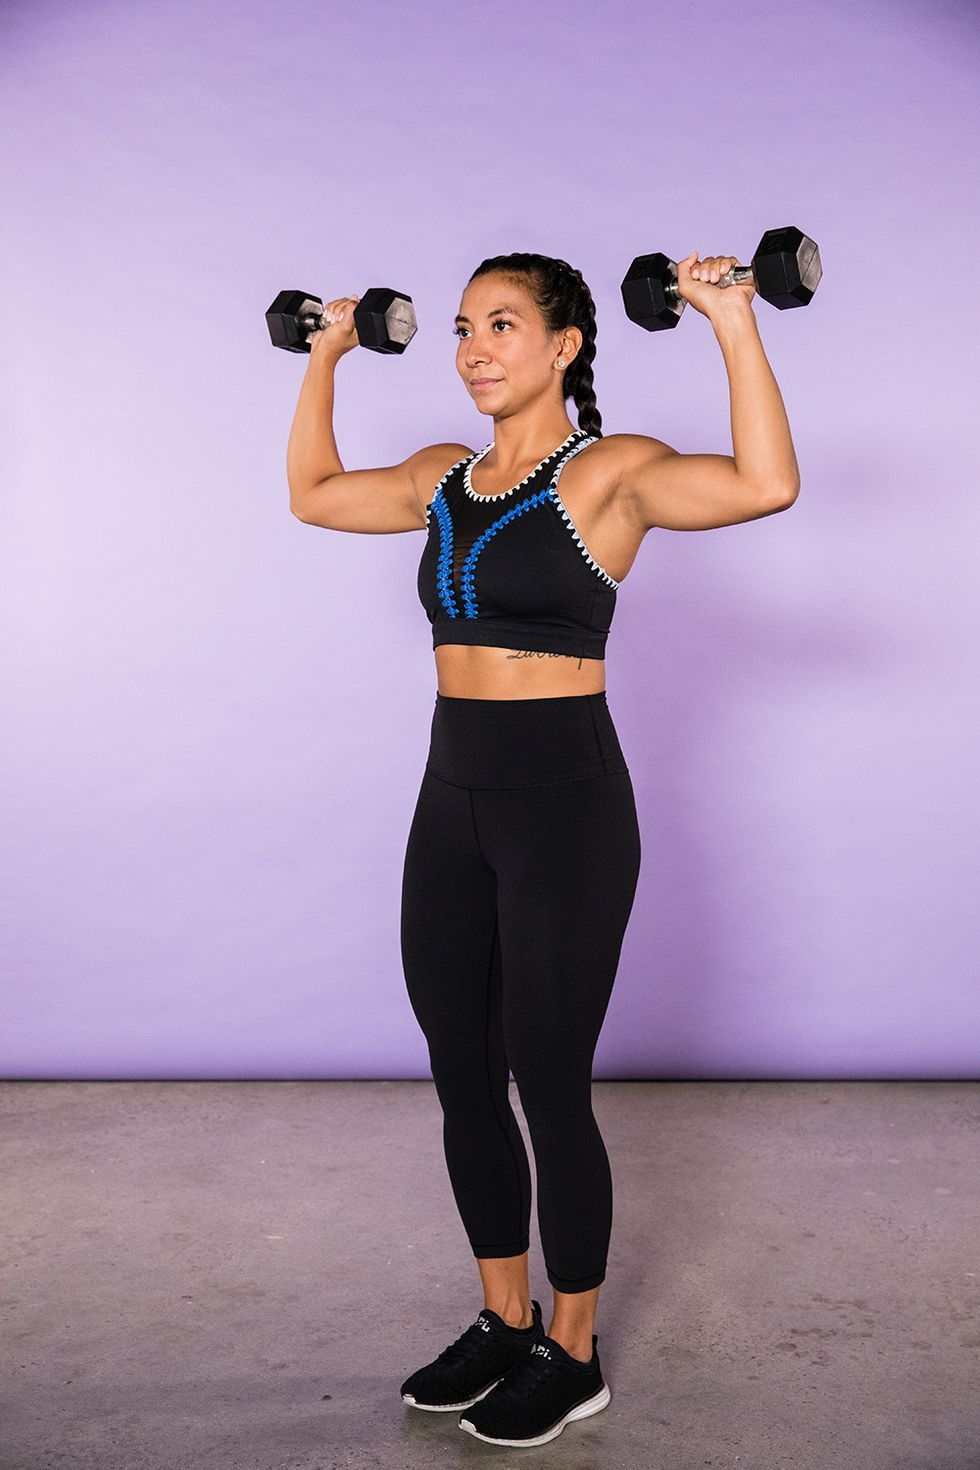 10 Best Dumbbell Exercises For Your Arms Workout Routine Arm Workouts Upper Body Circuit